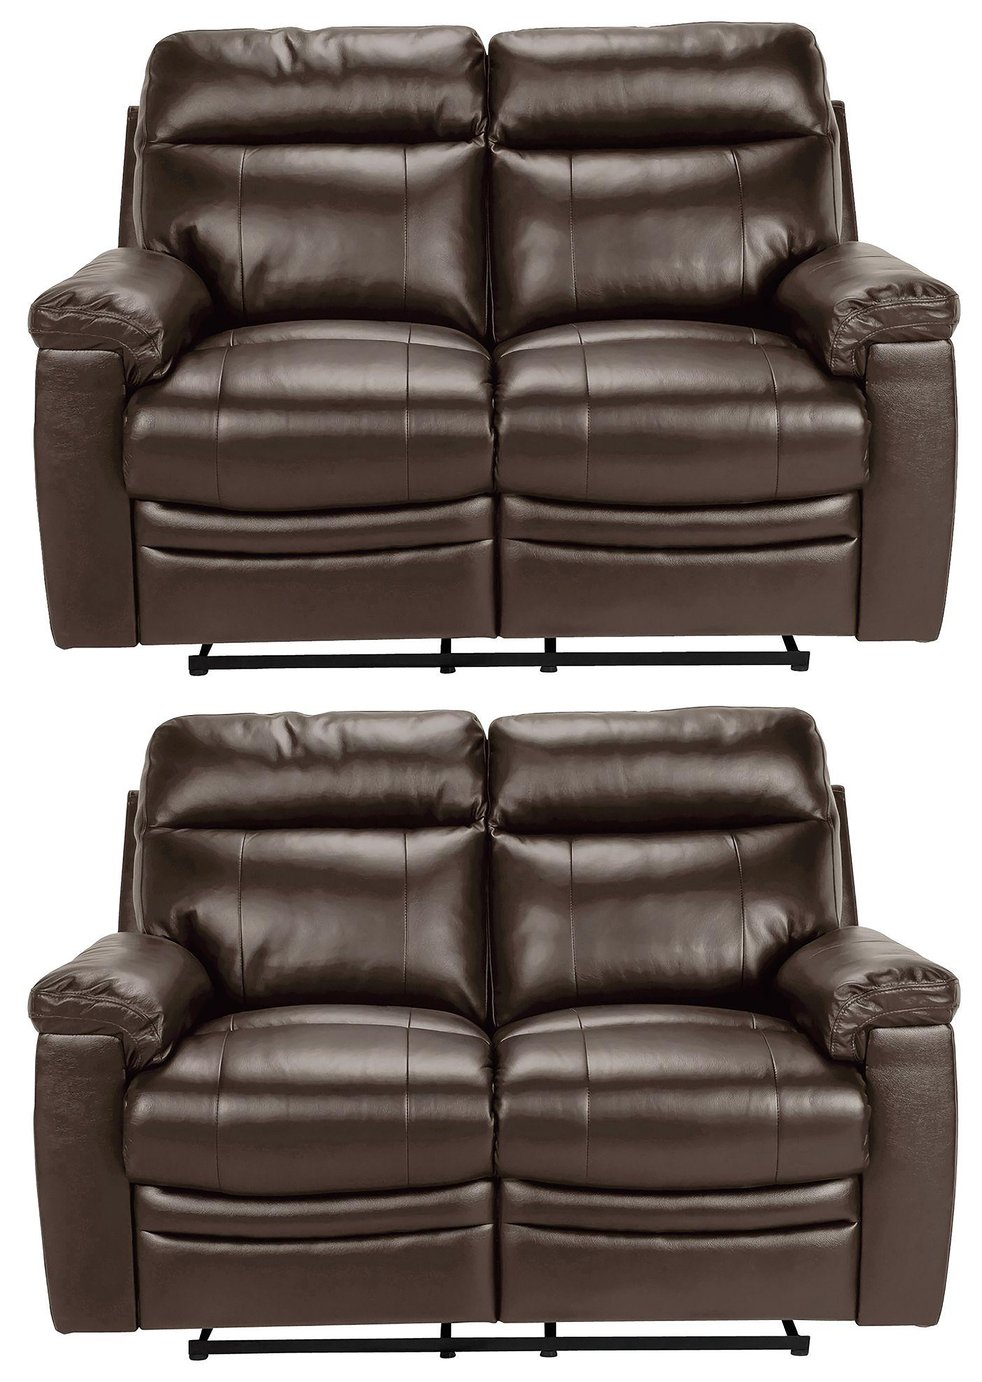 Argos Home Paolo Pair of 2 Seater Manual Recline Sofa -Brown